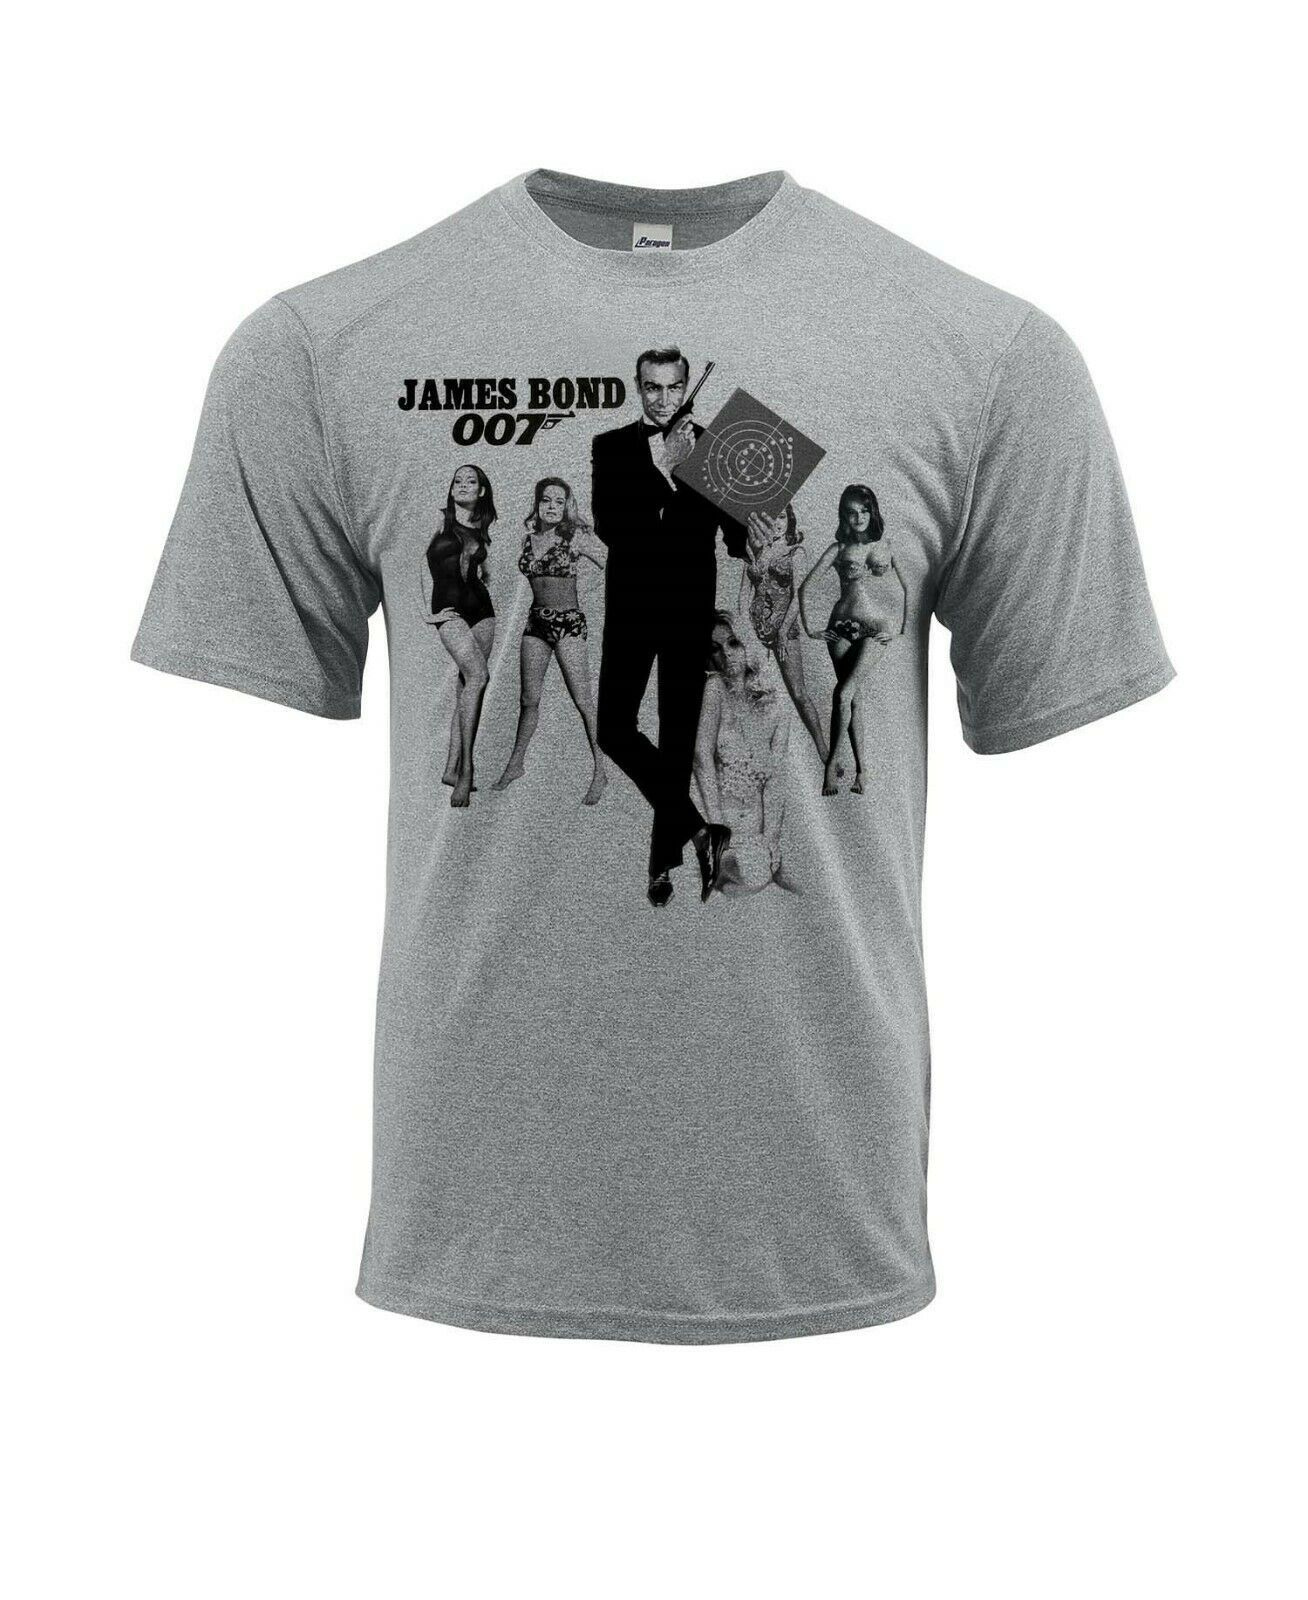 James bond 007 dri fit t shirt moisture wick retro 60s 70s spf gray graphic retro tee